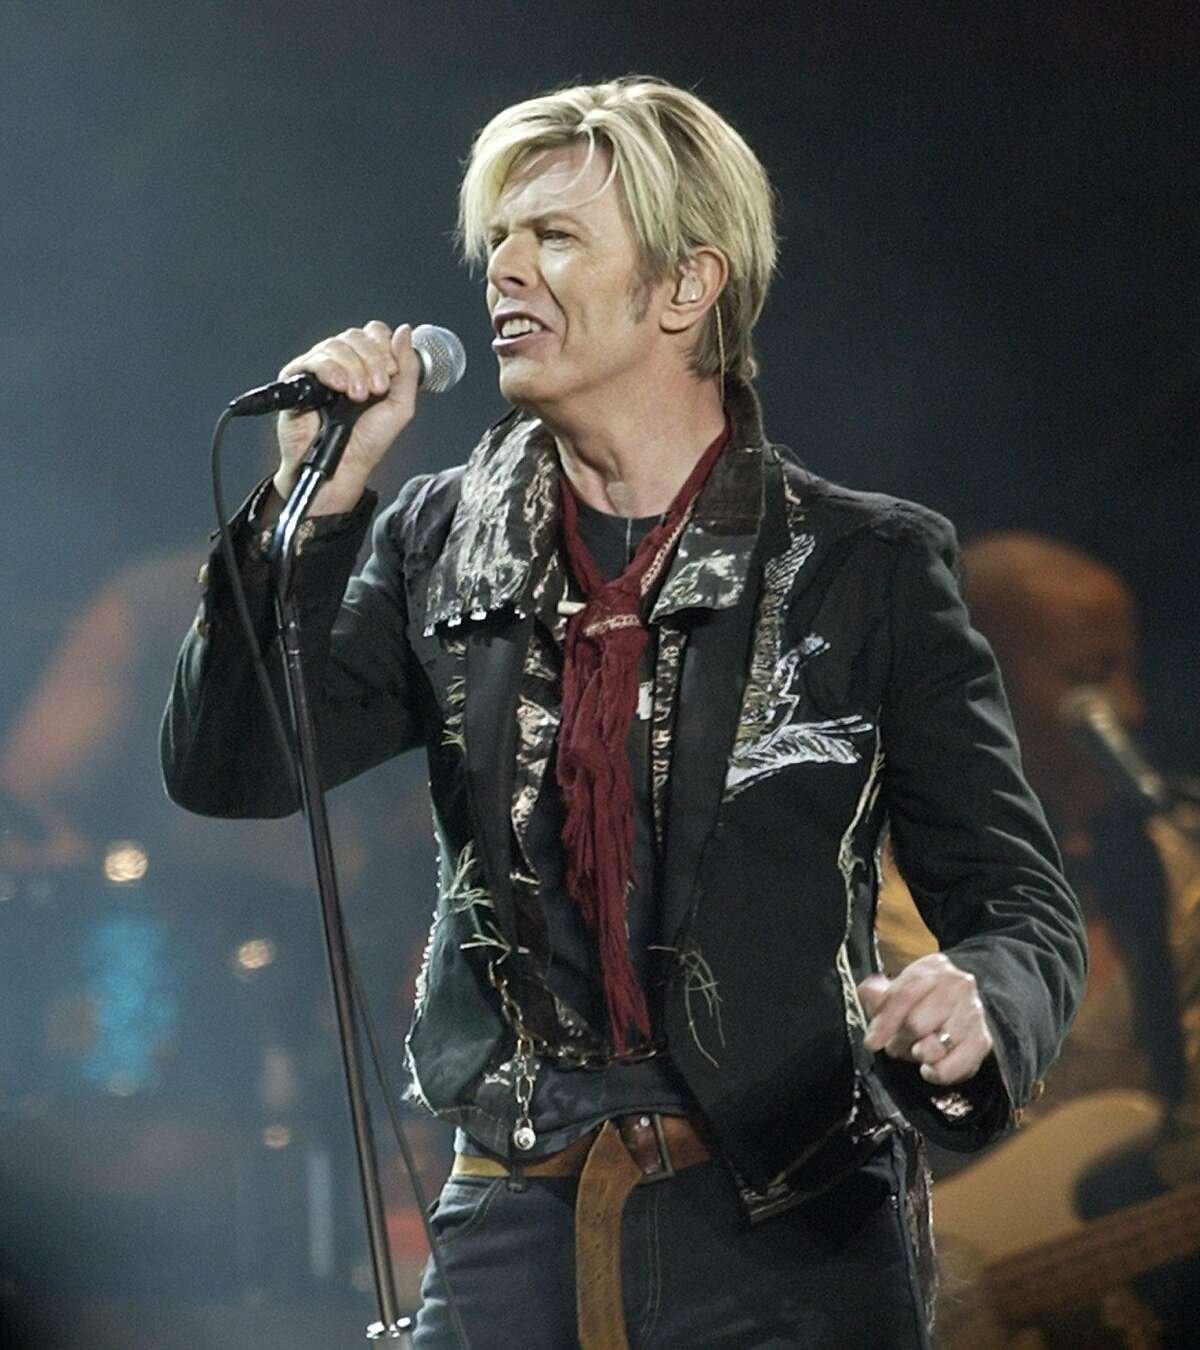 FILE - In this Dec. 15, 2003 file photo, singer/songwriter David Bowie launches his United States leg of his worldwide tour called